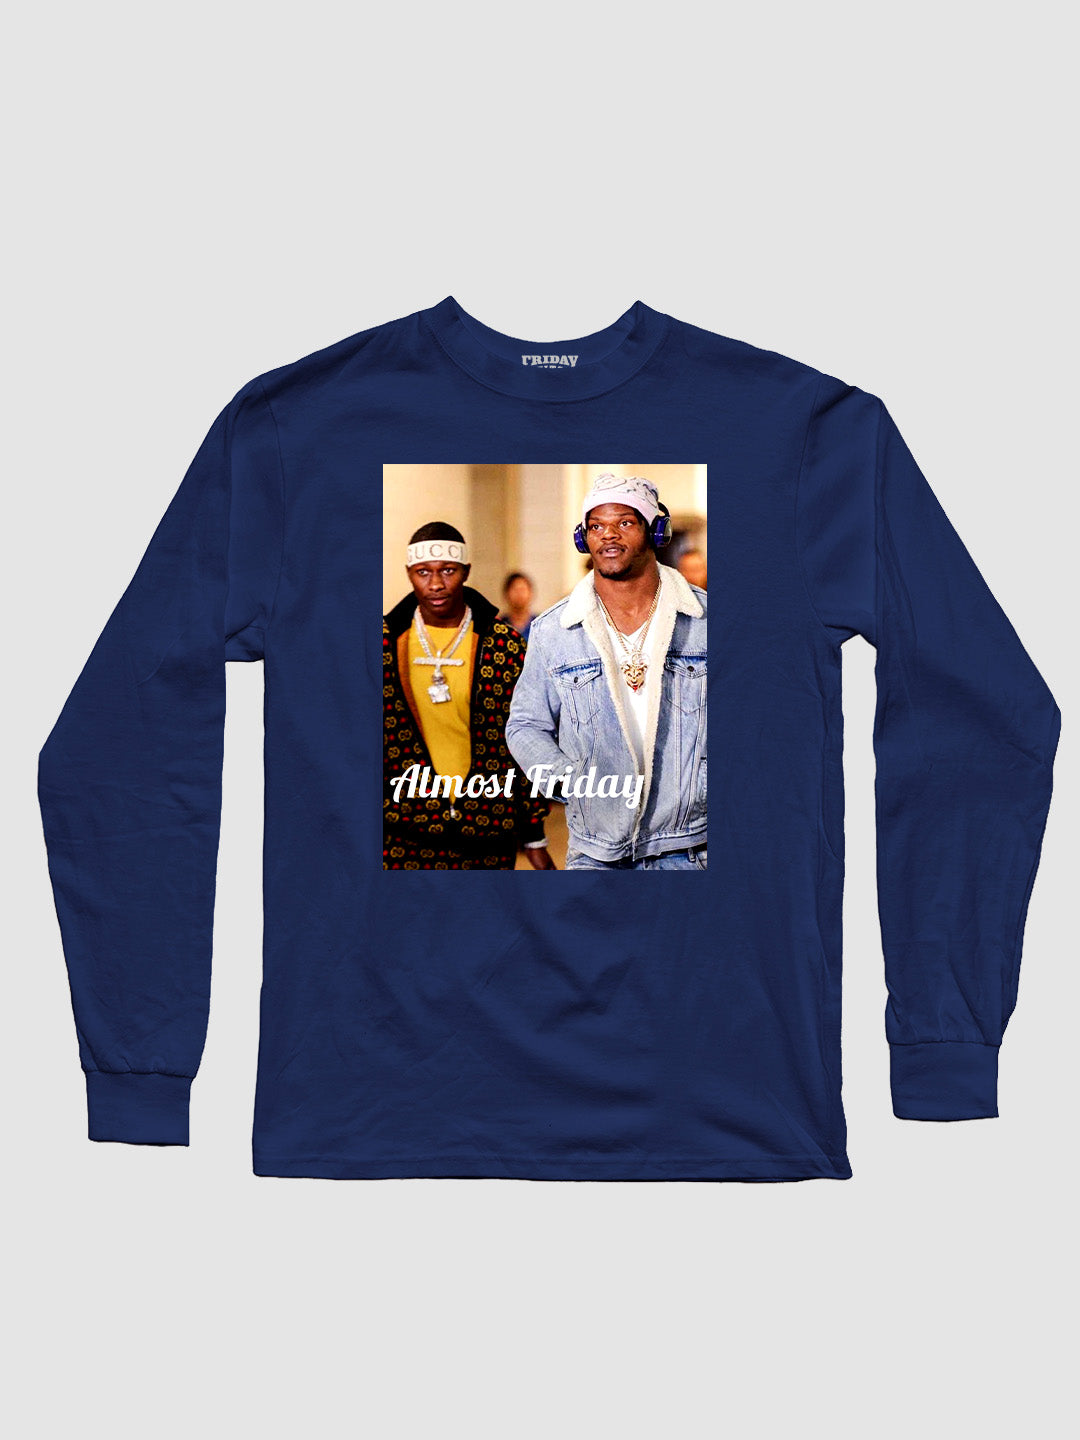 Almost Friday Pregame Fits Longsleeve Shirt